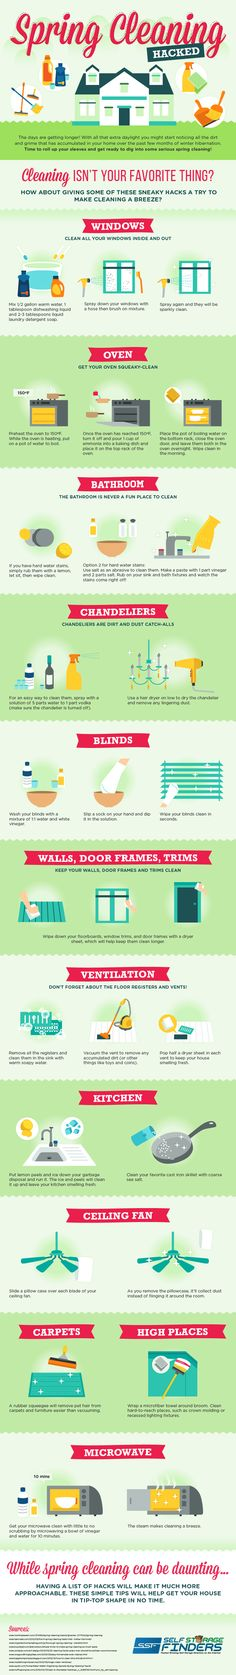 Spring cleaning: Hacked! #Infographic